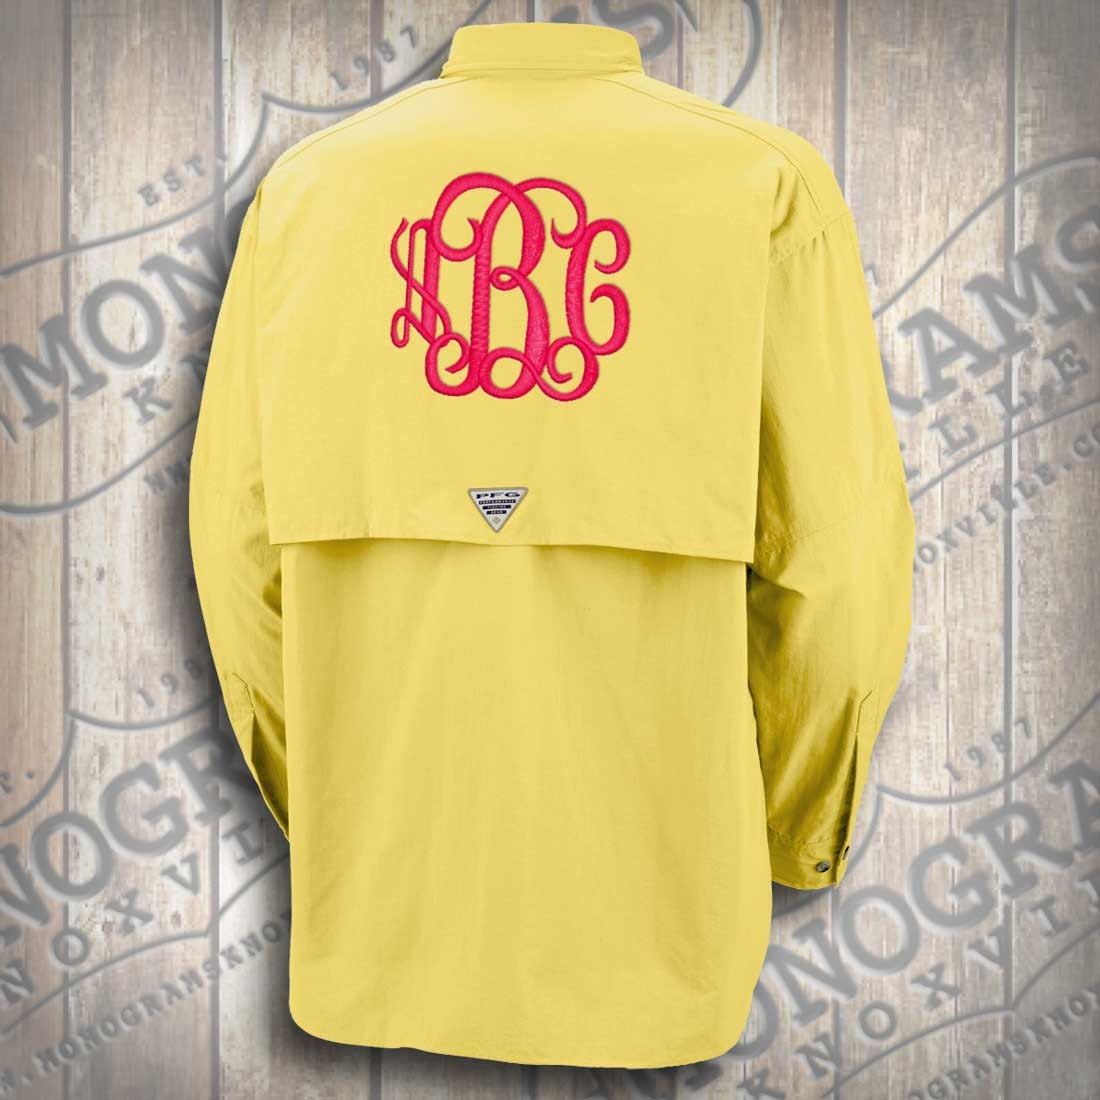 Monogram columbia yellow fishing shirt pfg font shown for Monogram fishing shirt